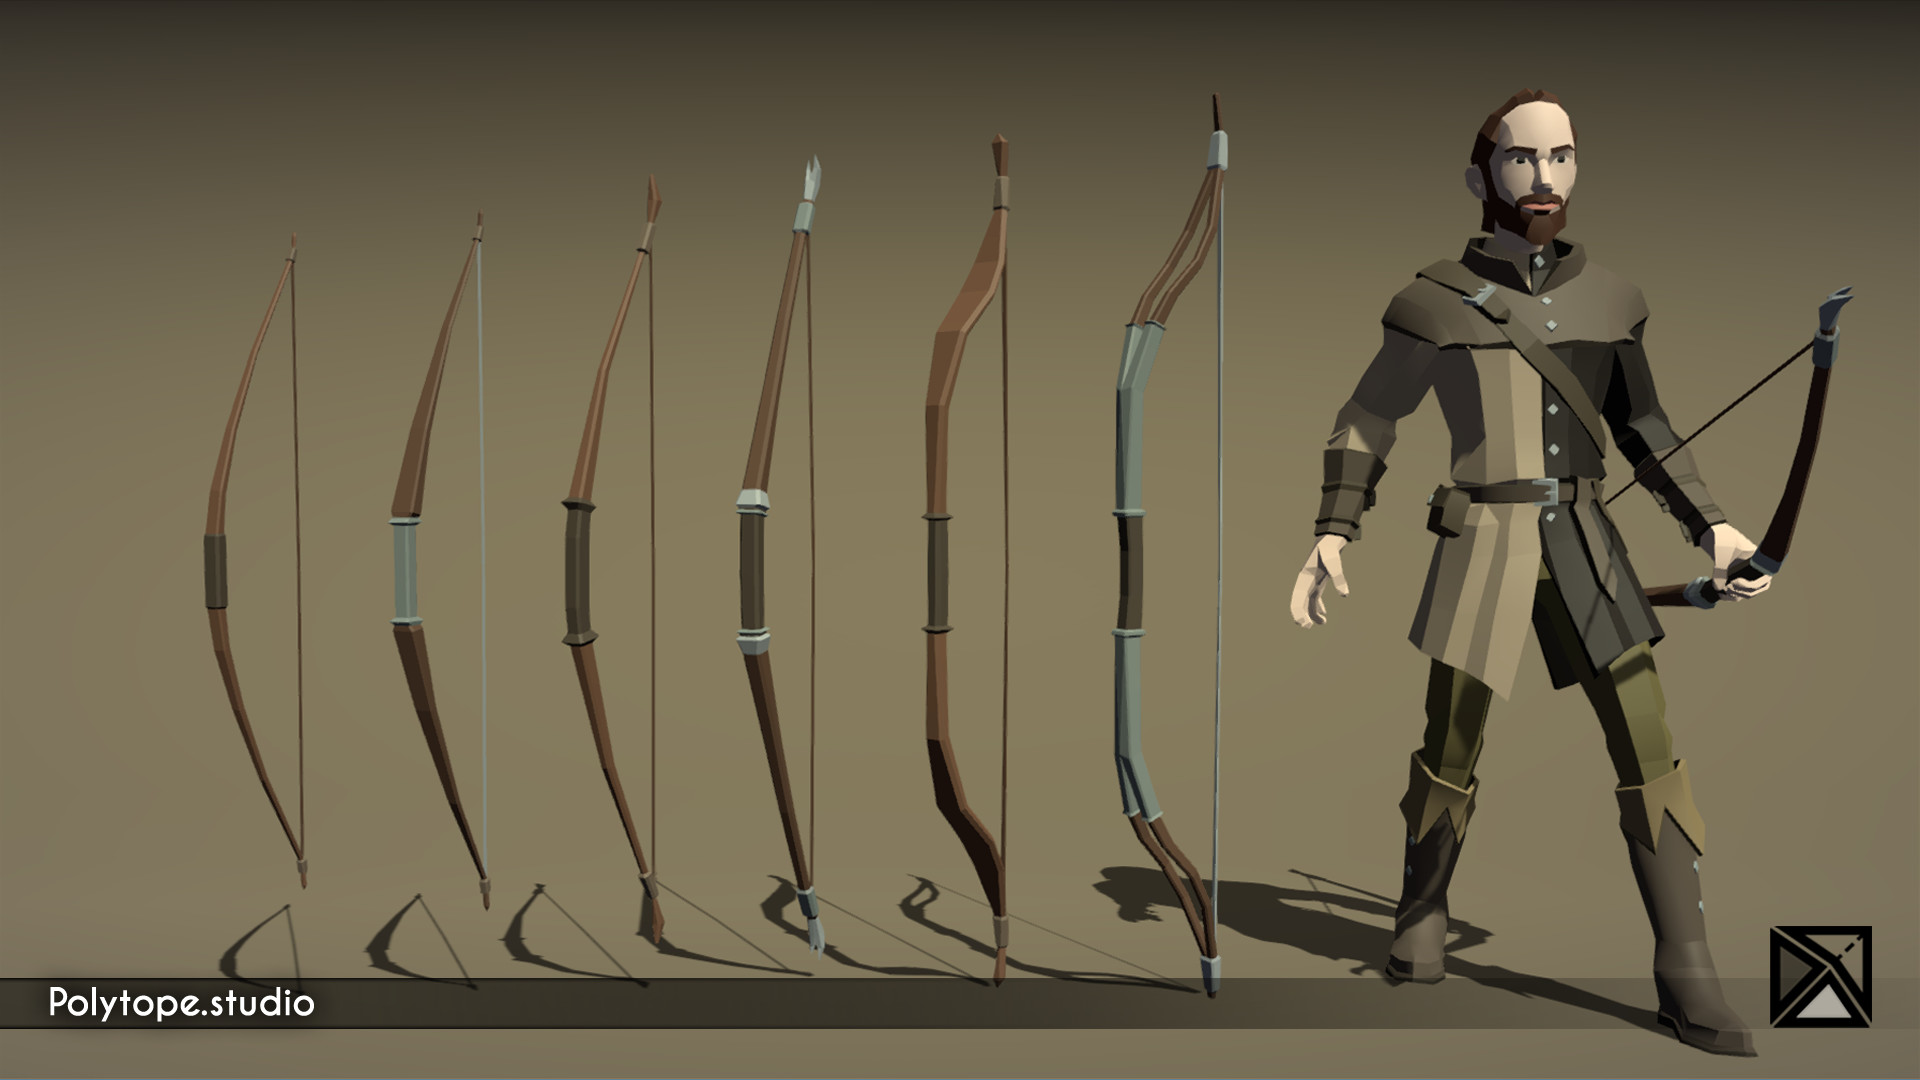 Polytope studio pt medieval lowpoly weapons longbow